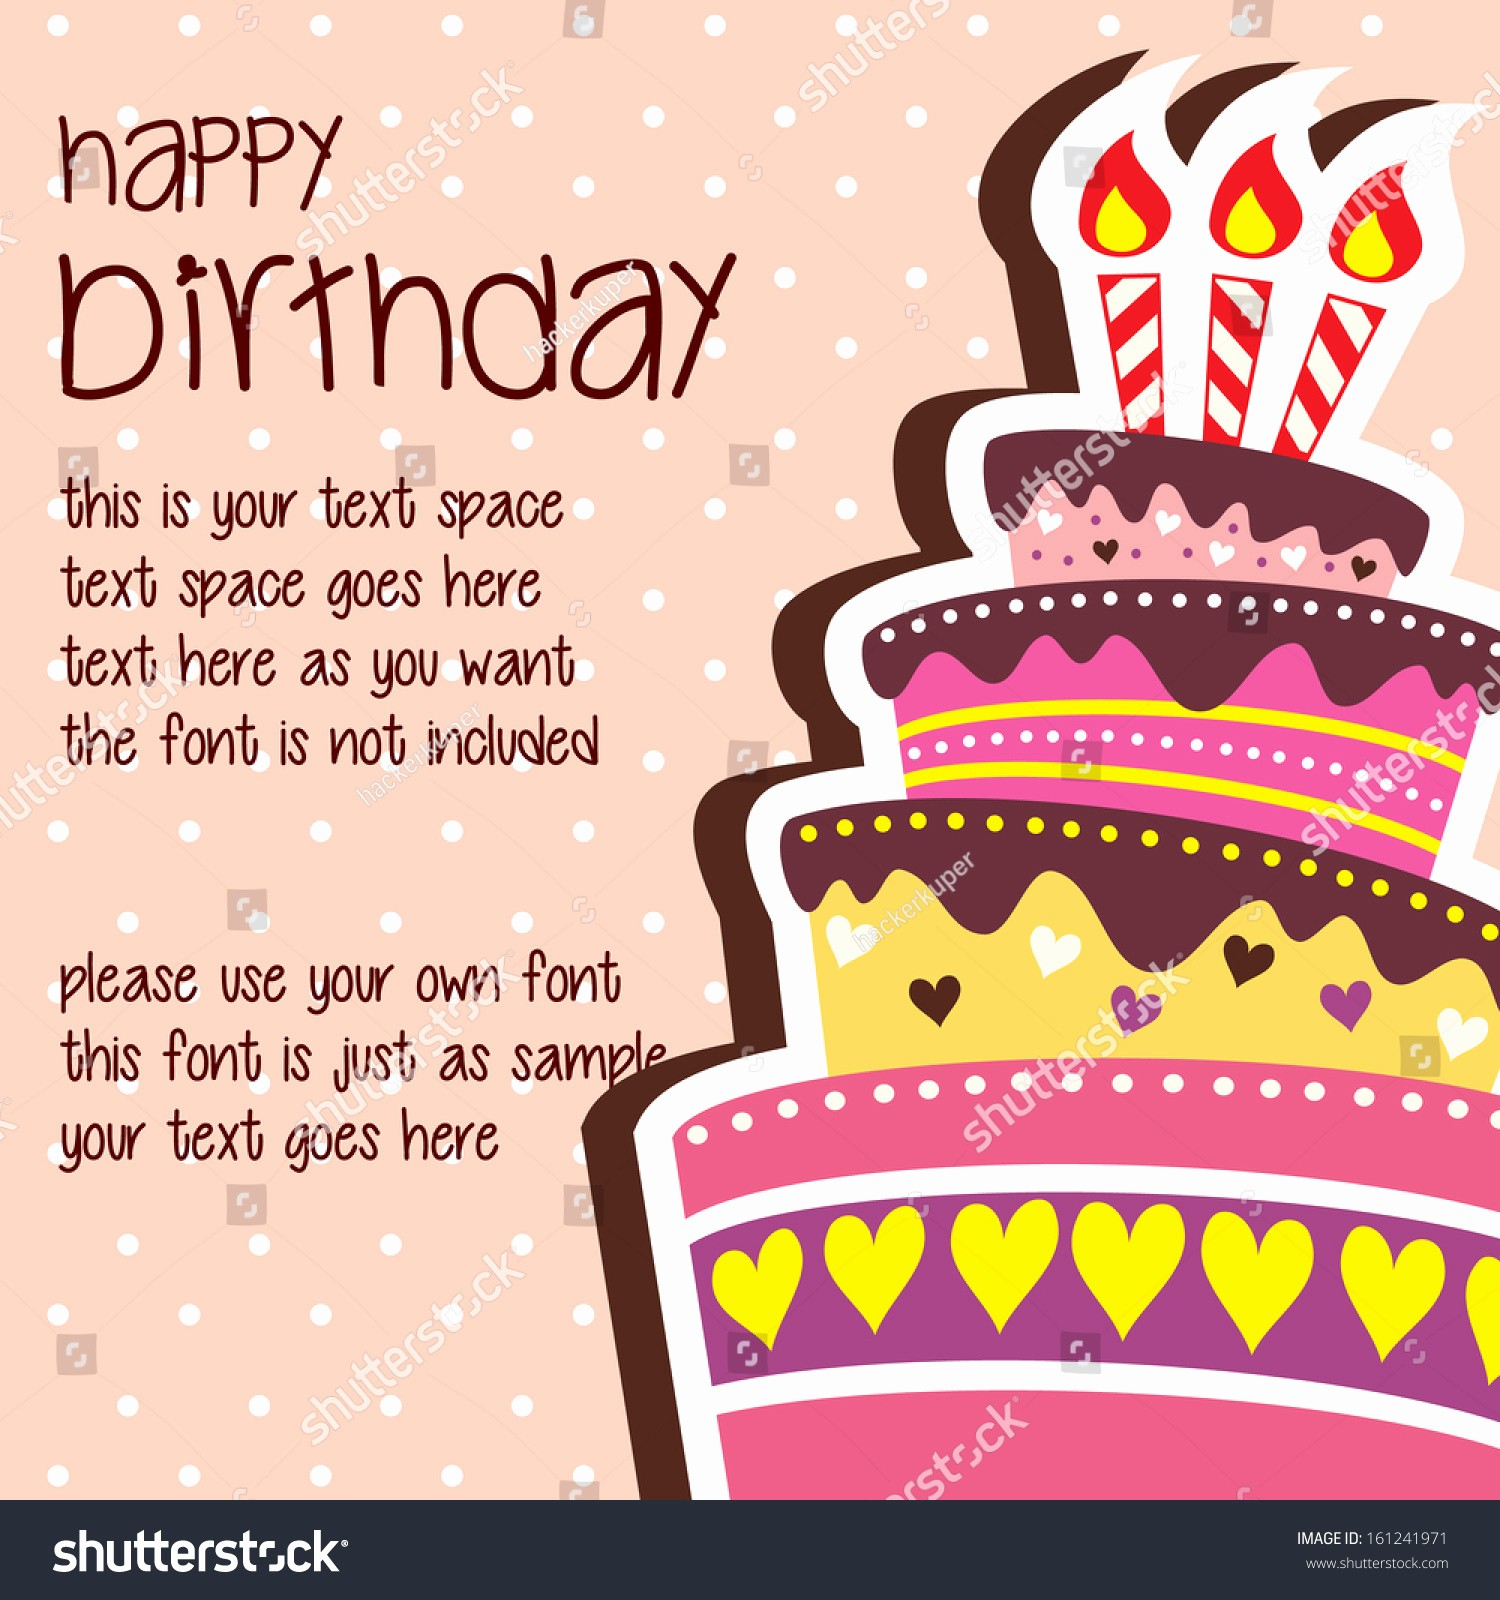 Birthday Card Template with Photo Fresh Birthday Card Template